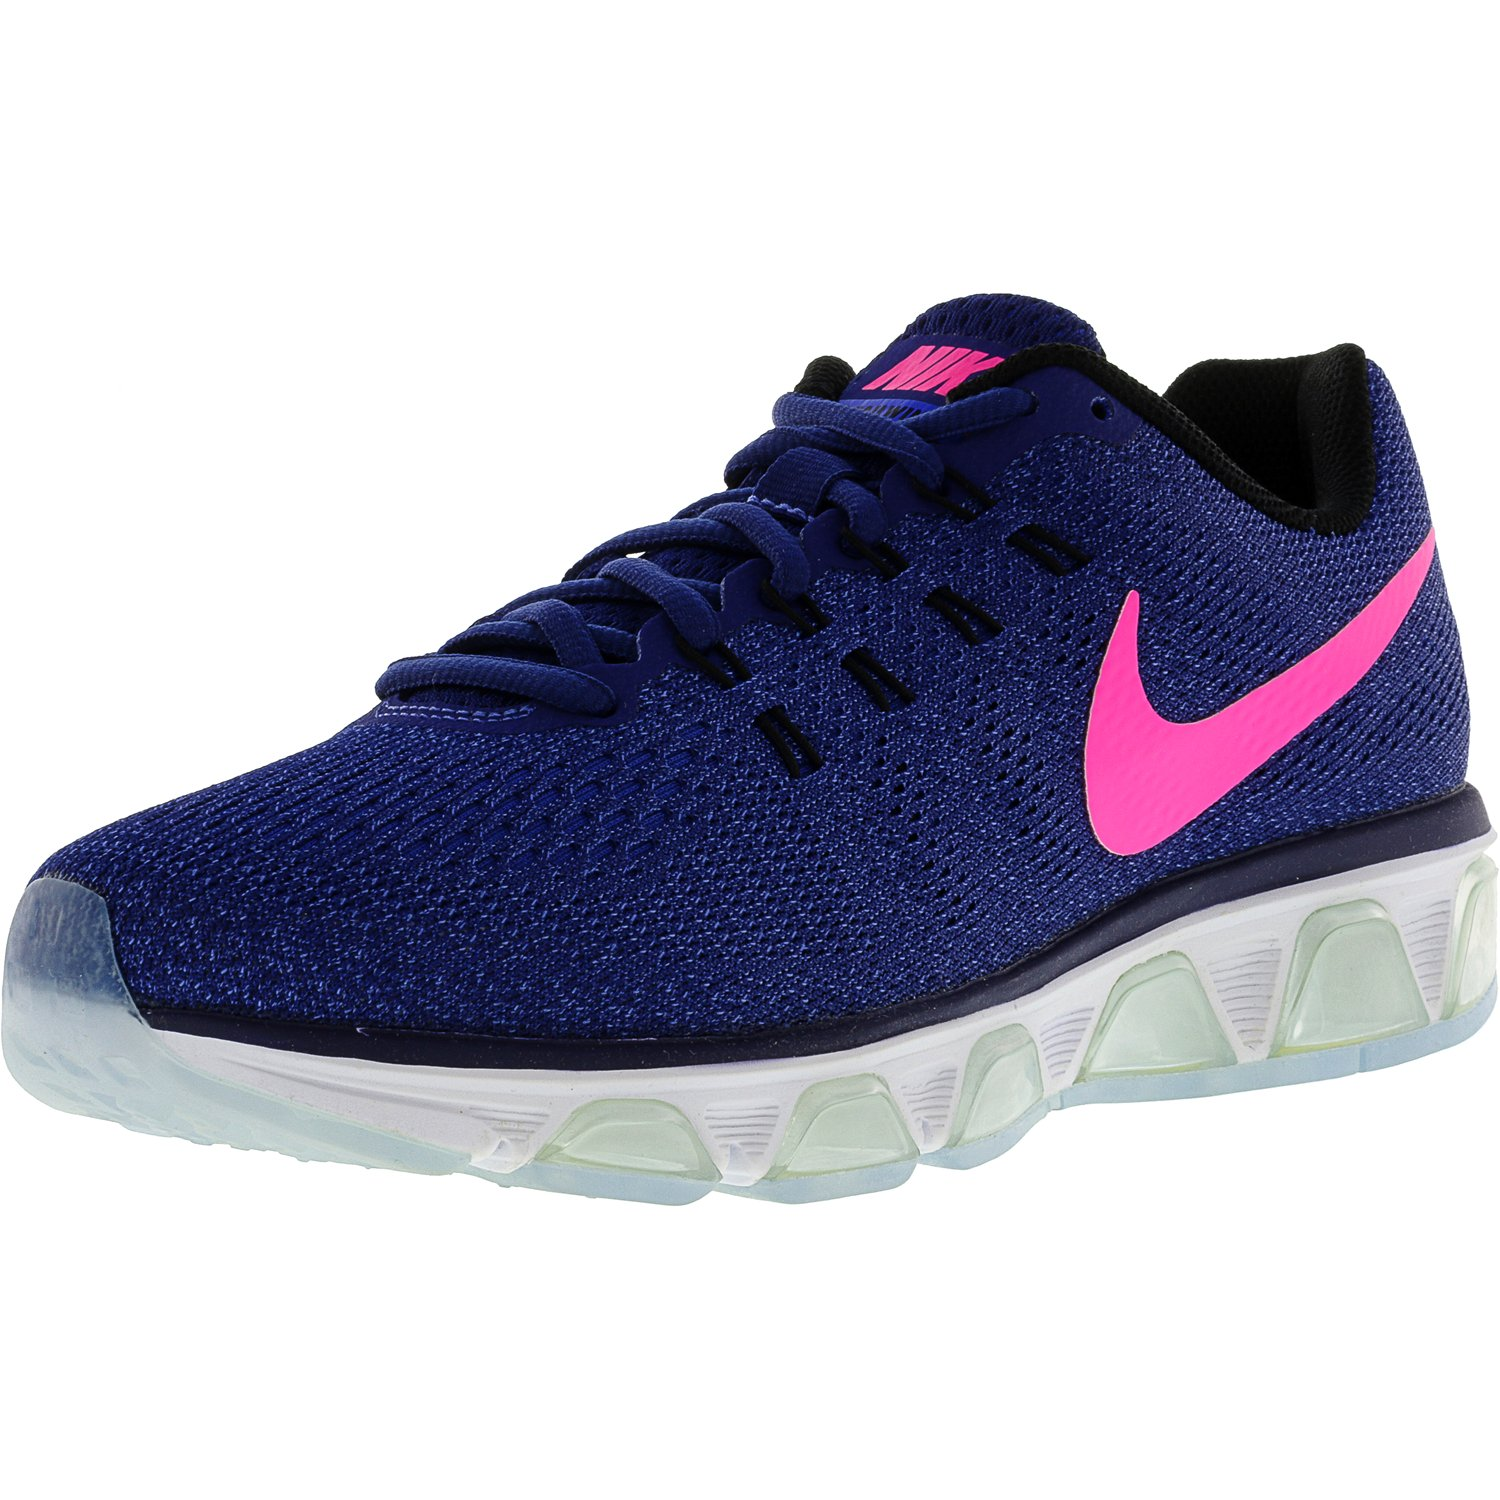 buy online d6fba 34803 ... discount code for nike womens air max tailwind 8 deep royal blue pink  blast racer blue